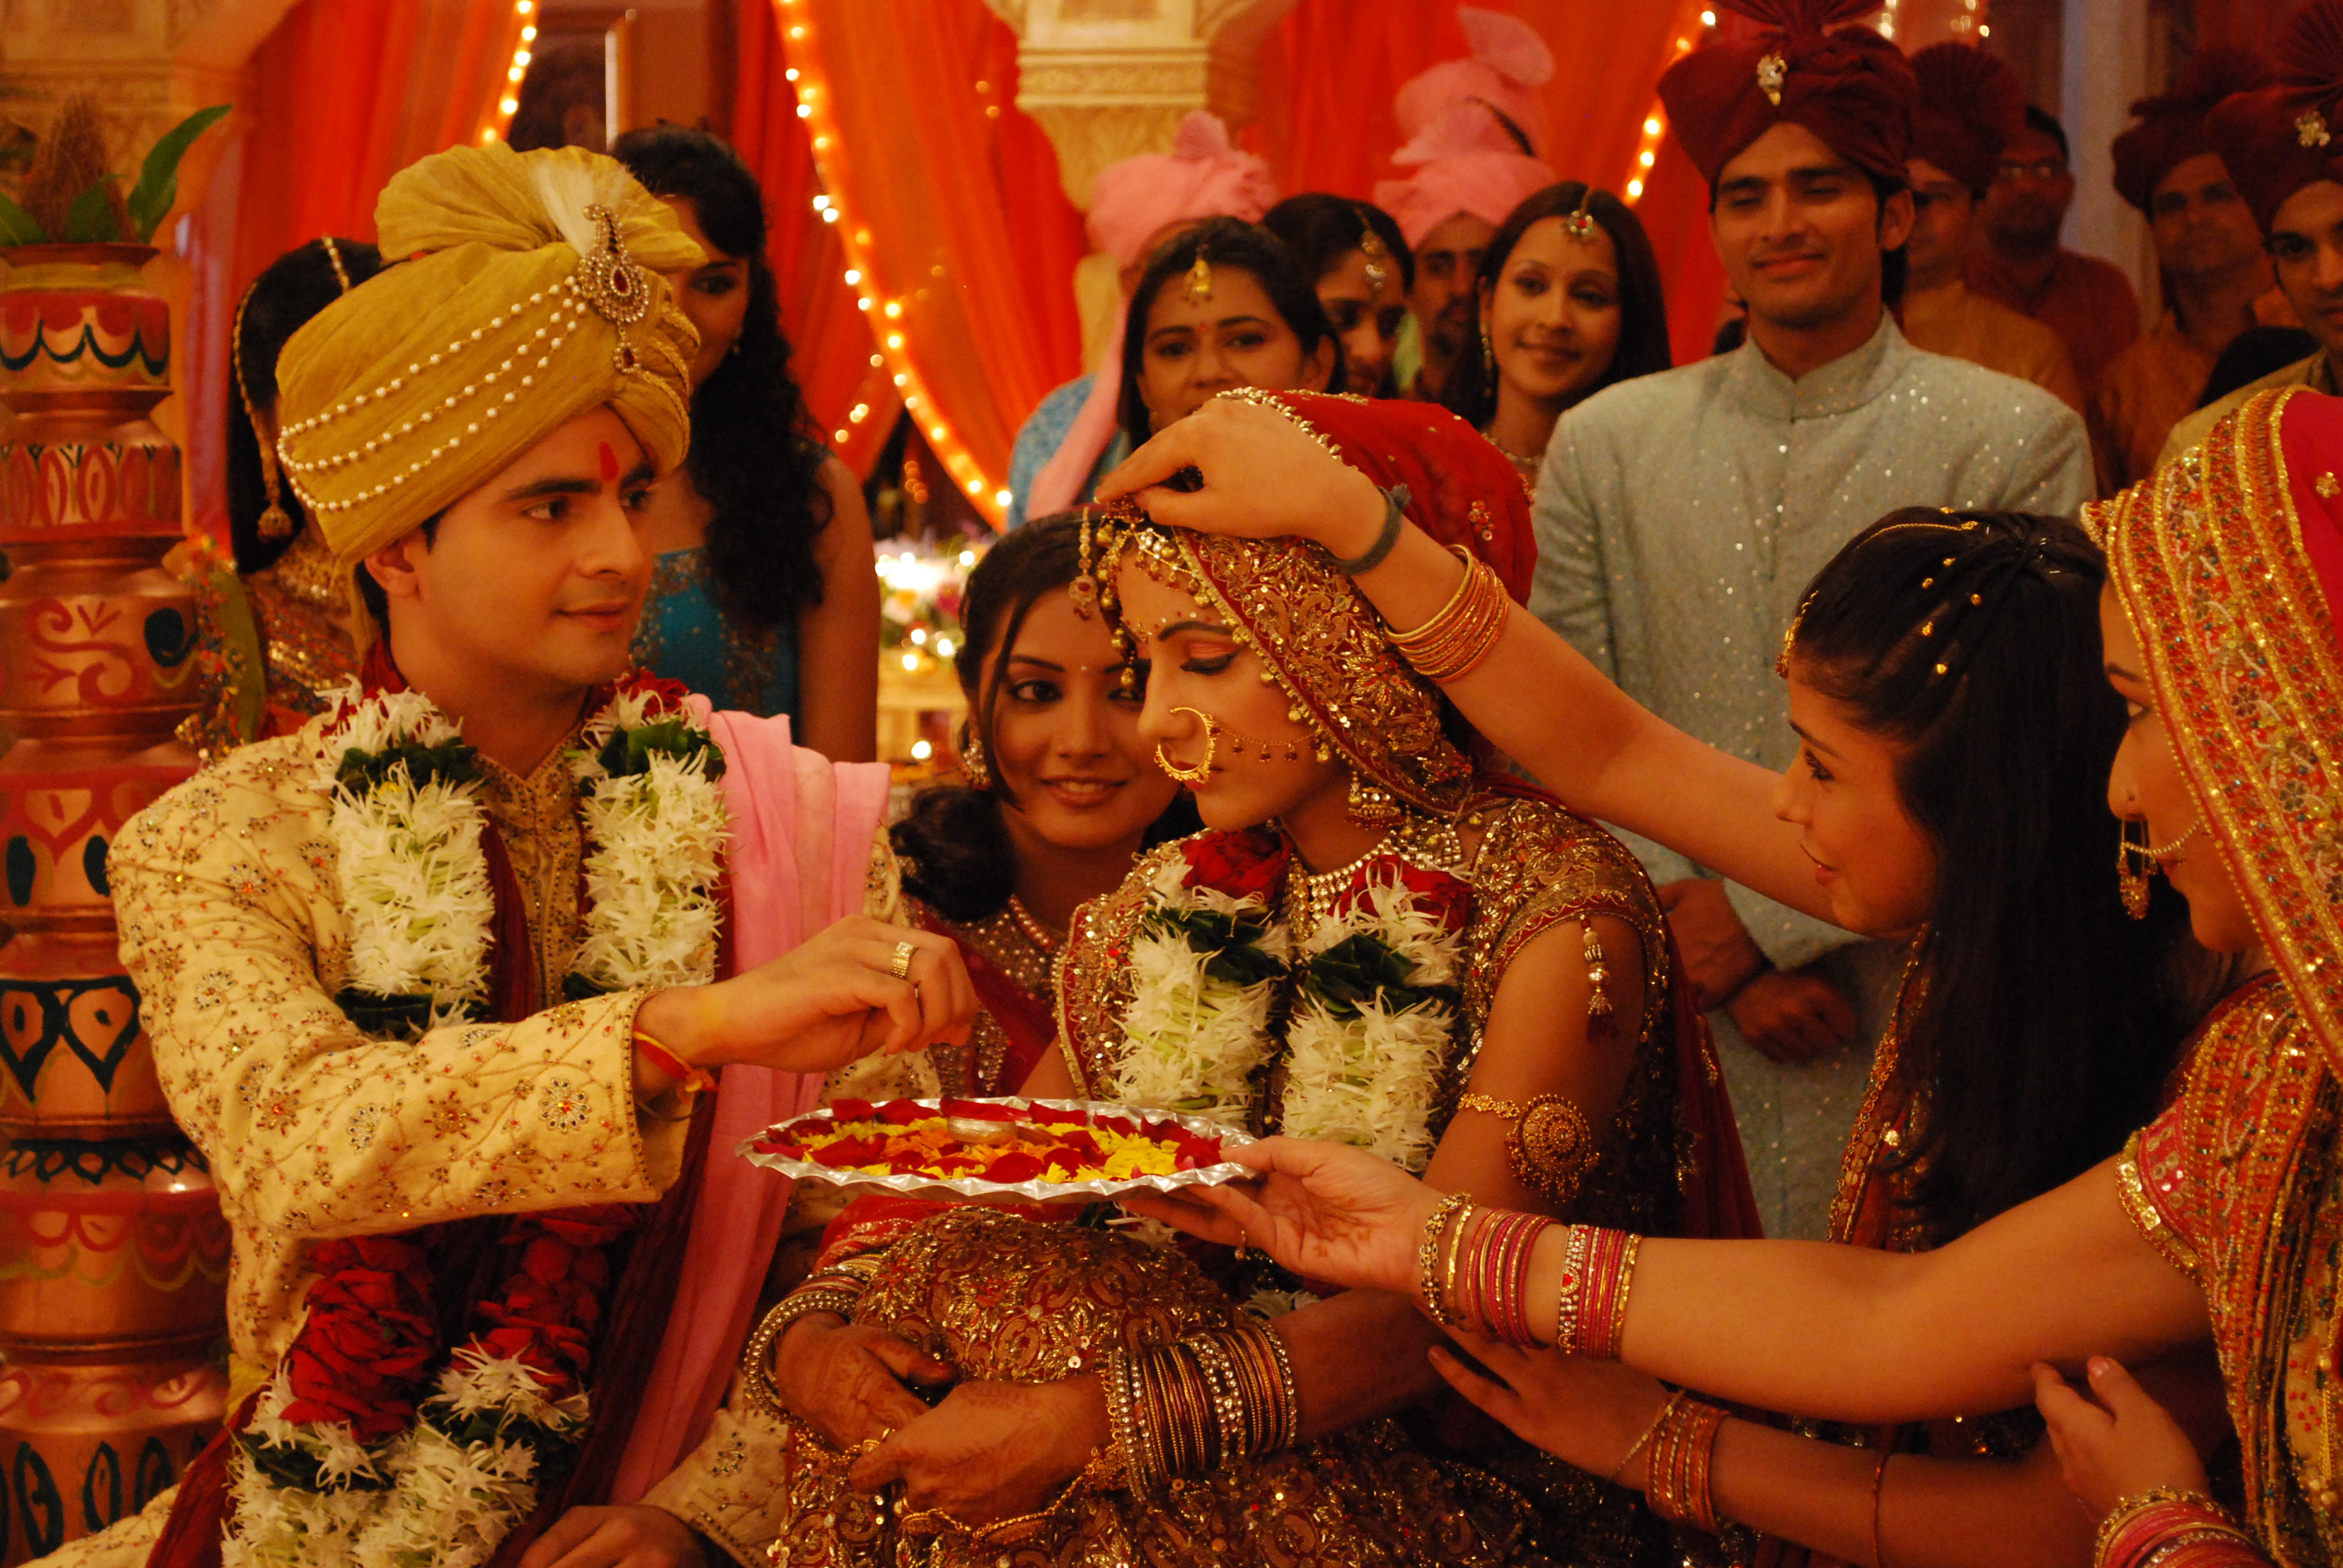 shaadi com The no 1 hindu matrimonial website with 2 million successful marriages, shaadi is trusted by over 20 million for matrimony find hindu matches, join free.